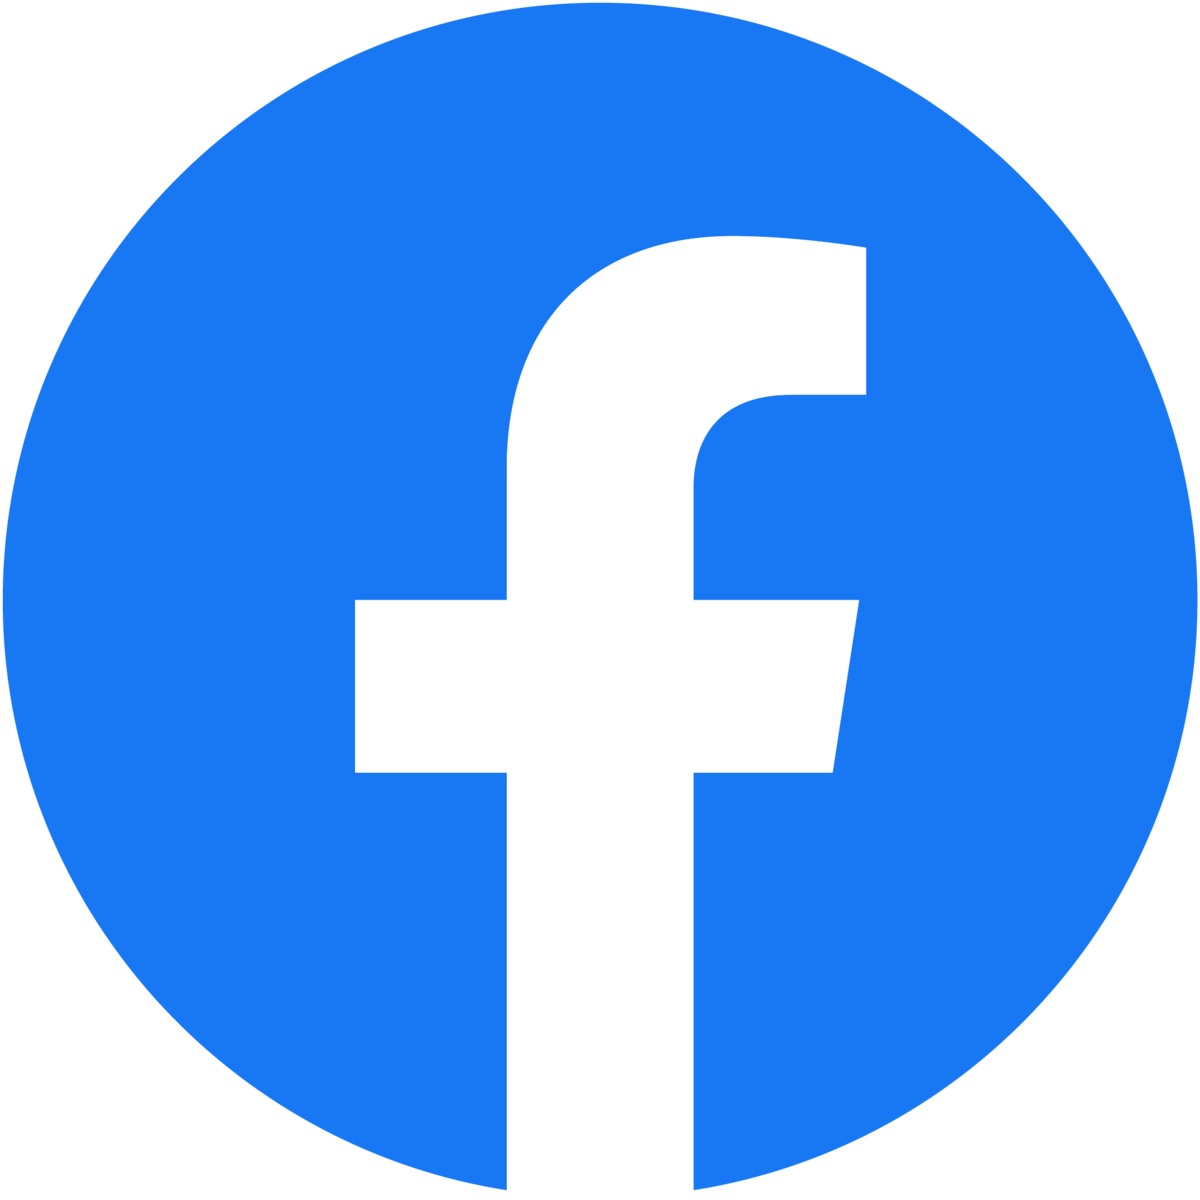 Datei:Facebook Logo (2019).png – Wikipedia